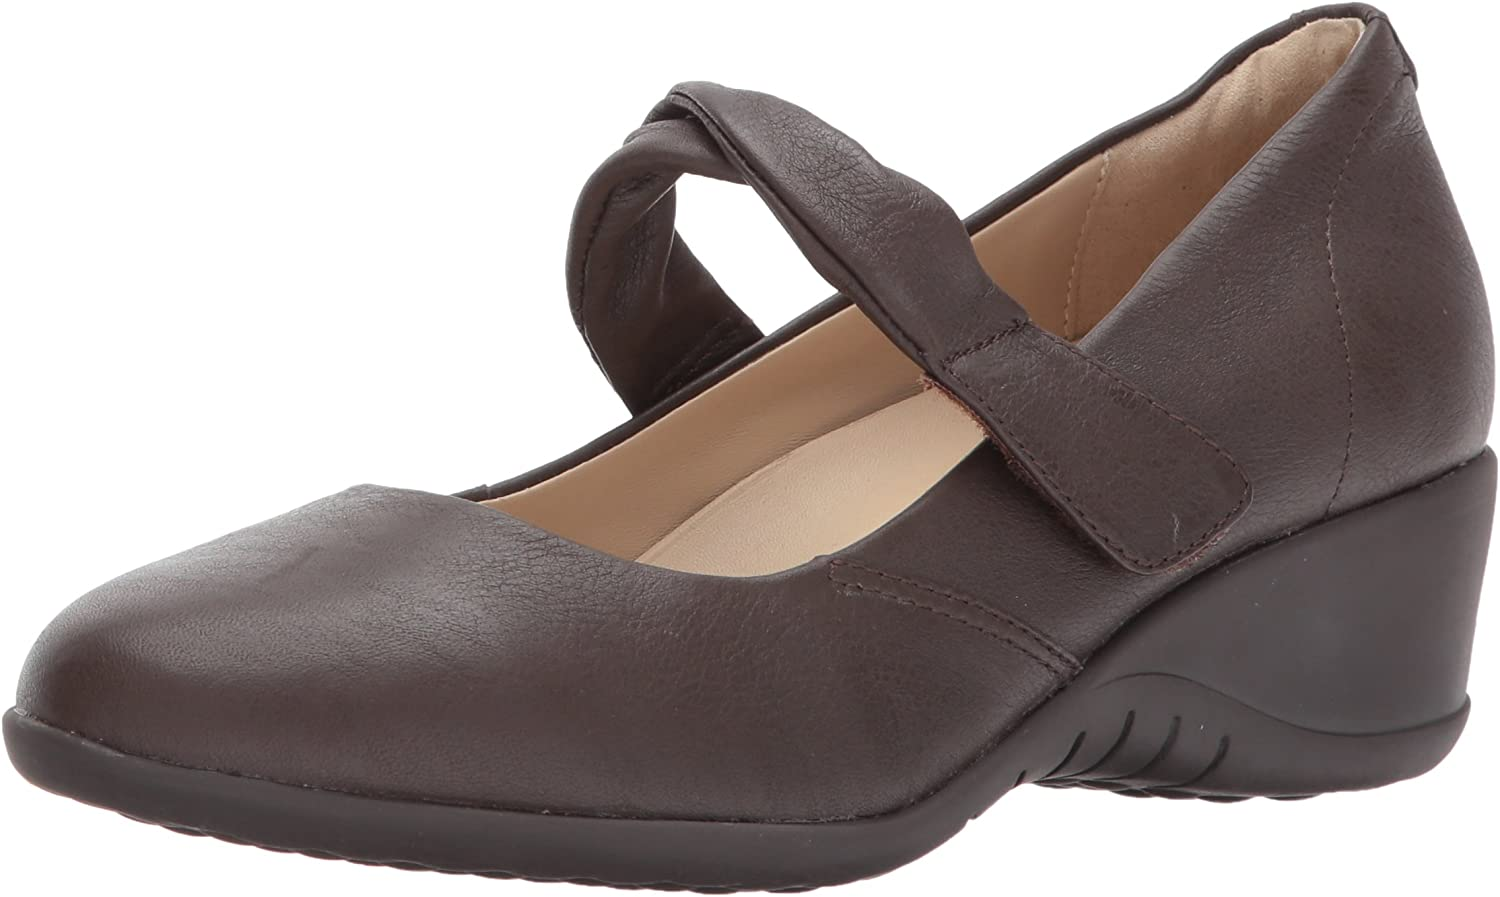 Hush Puppies Women's Jaxine Odell